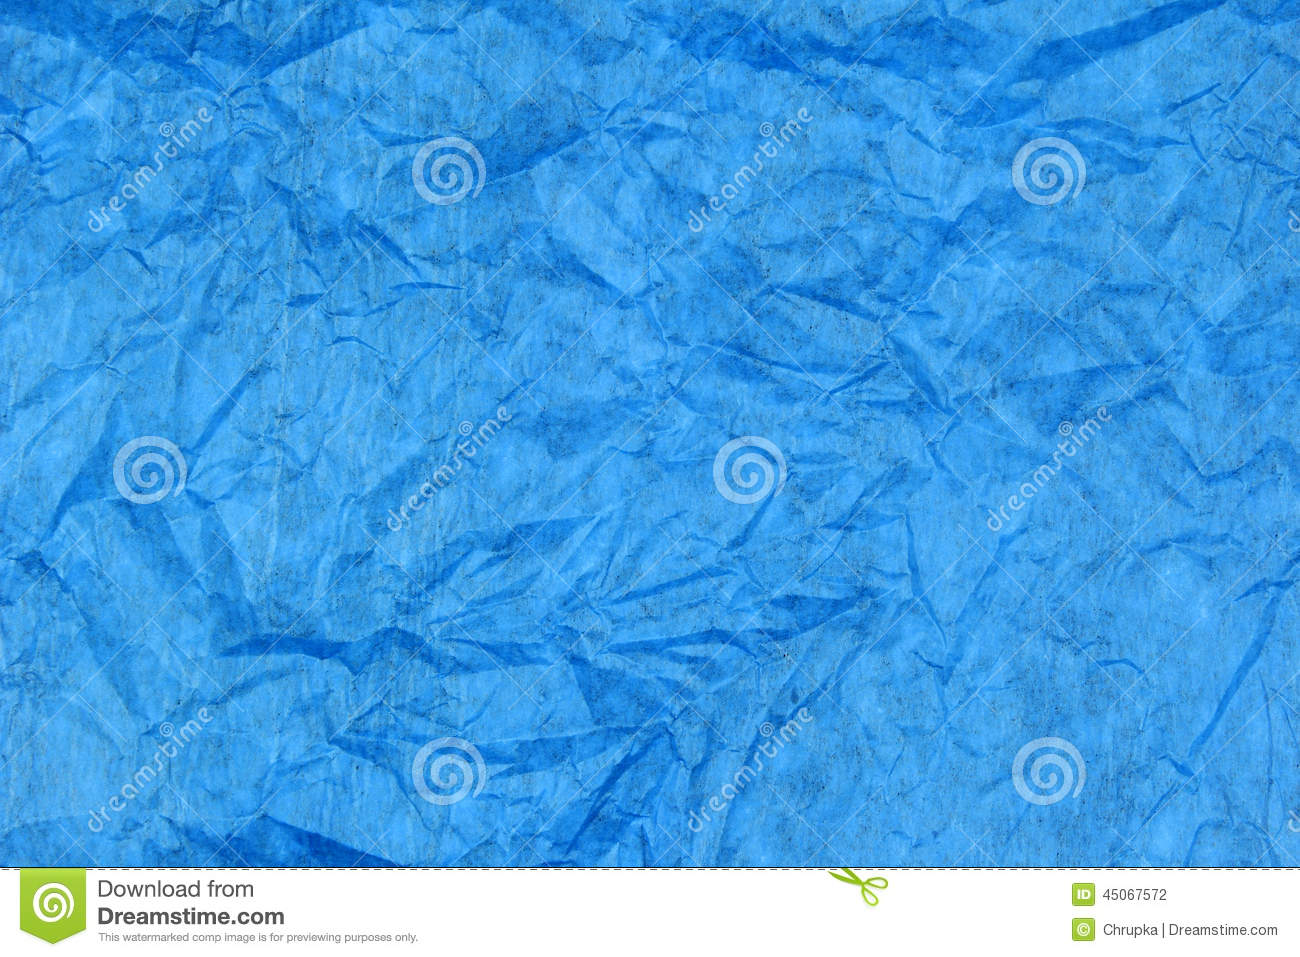 blue wrinkled paper texture - photo #12